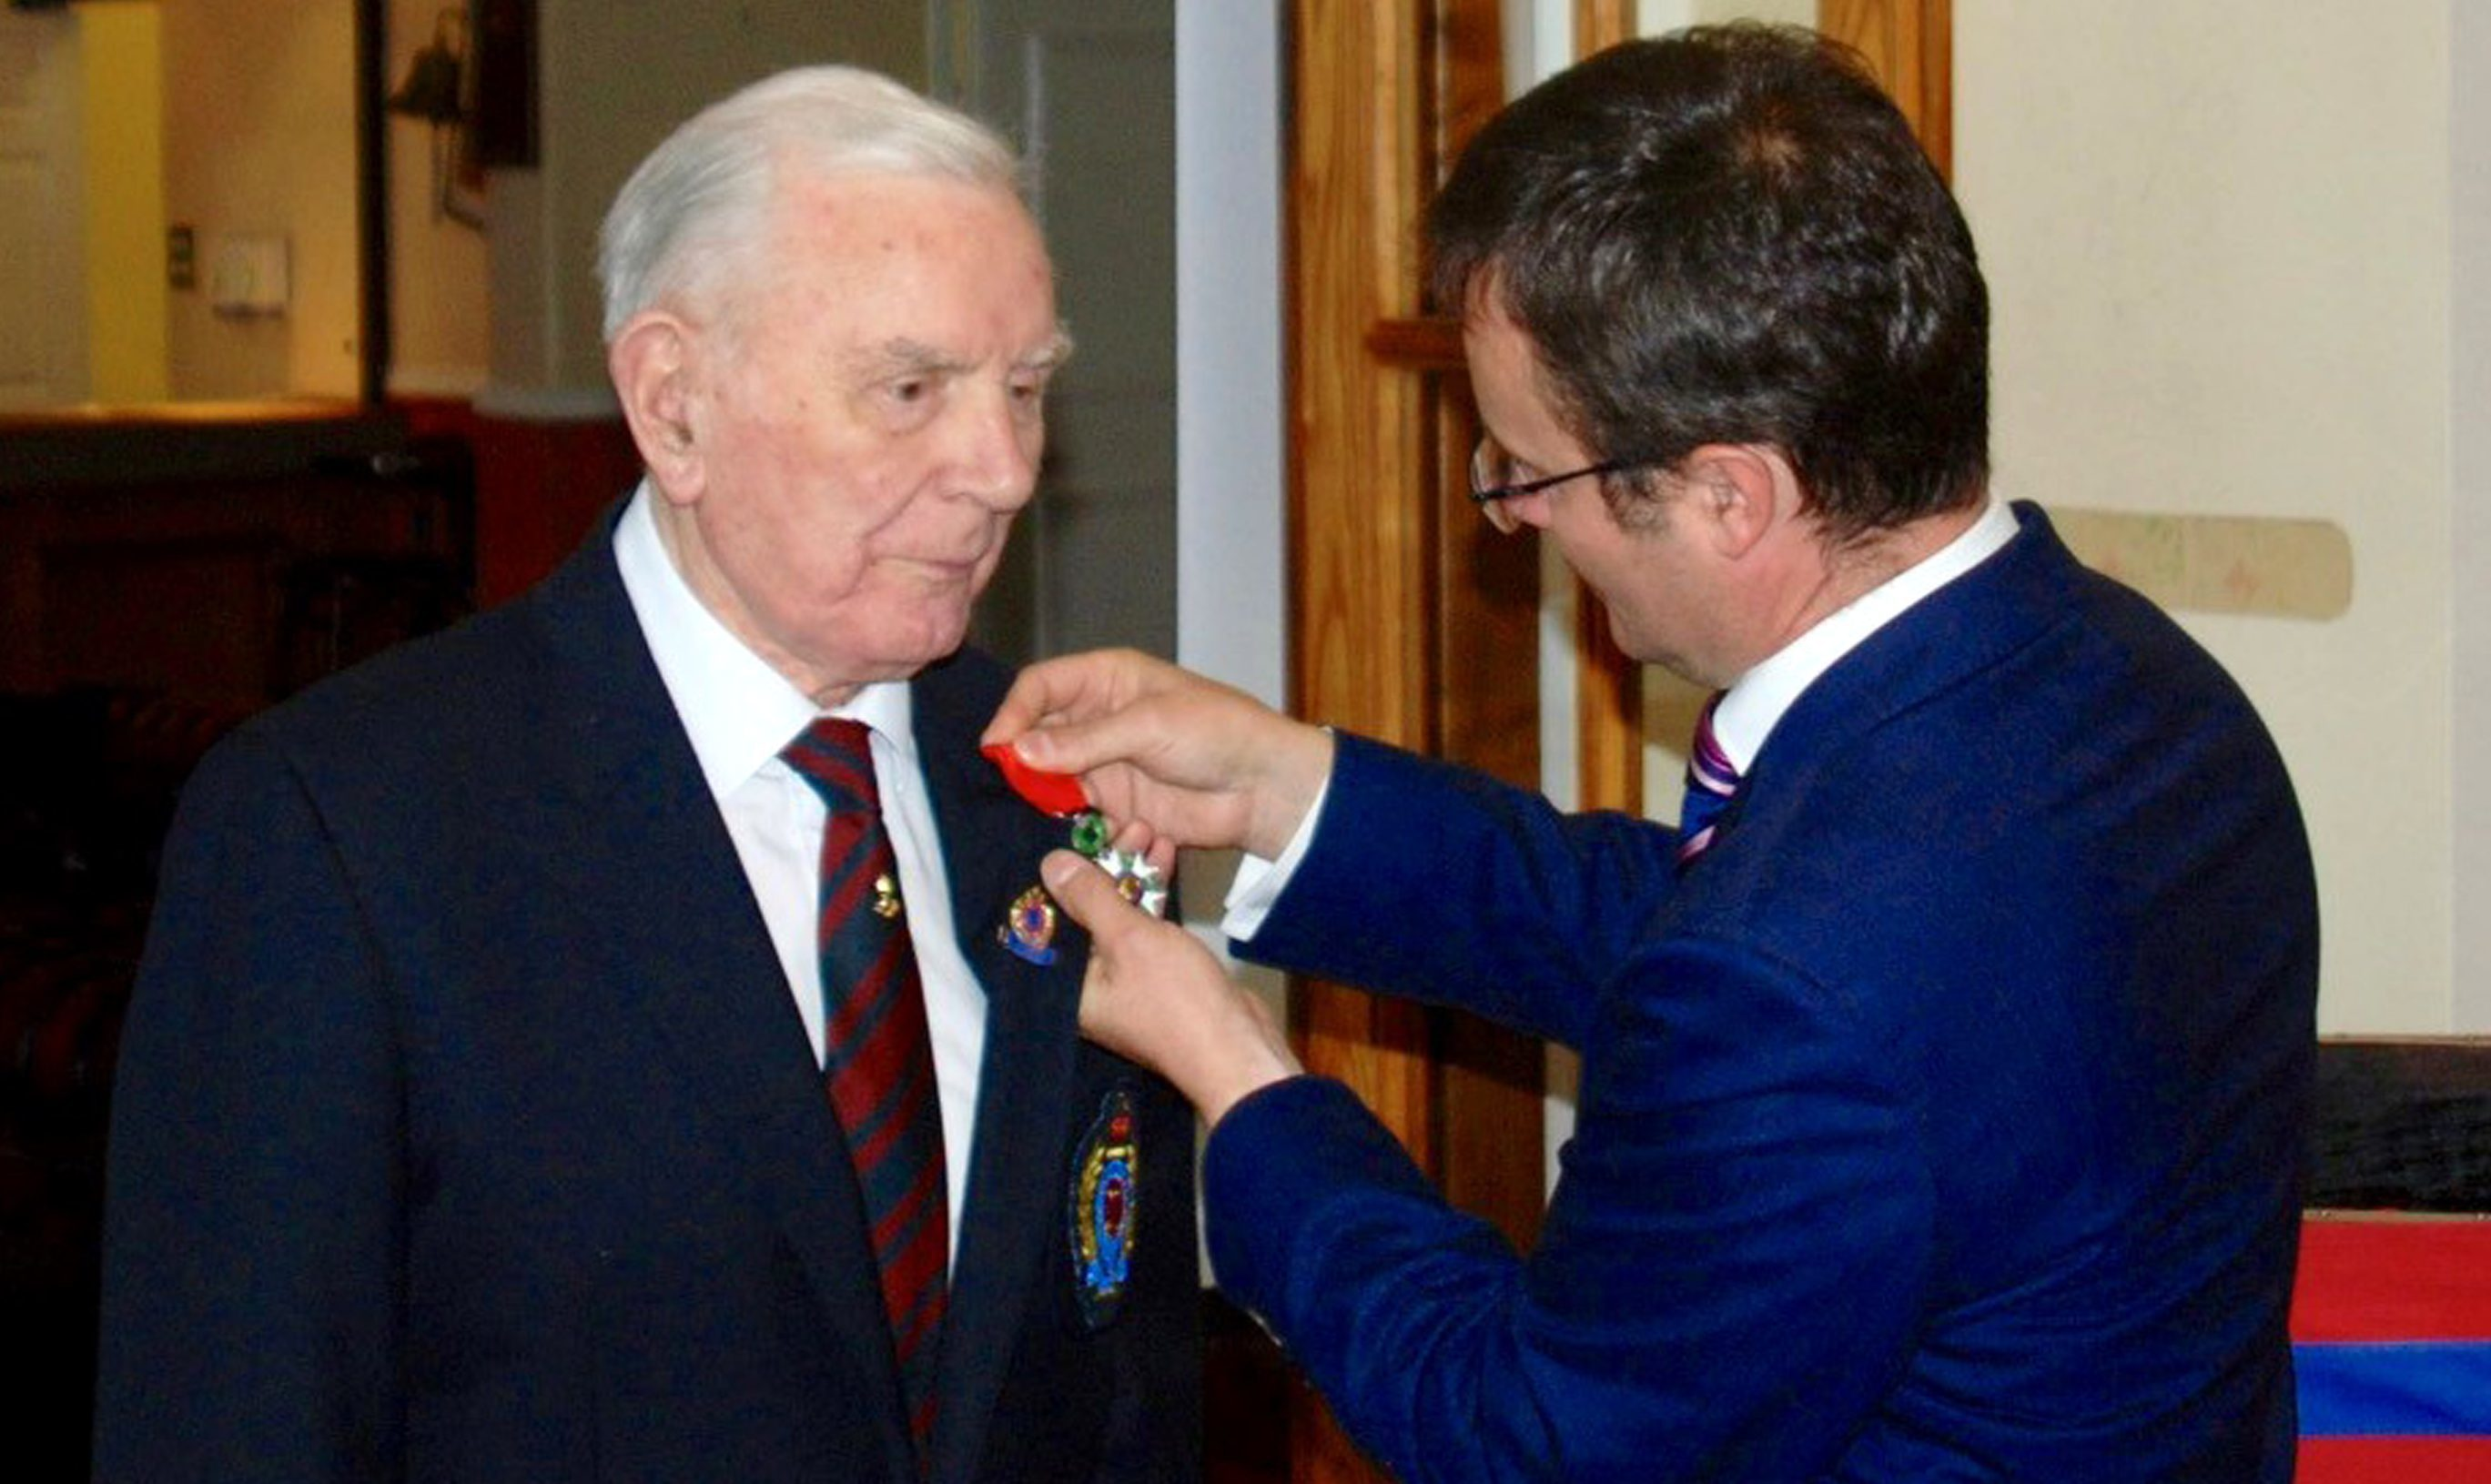 Irvine Rae receiving the Legion d'honneur, France's highest honour for his role in the D-Day landings, from French Consul General in Scotland Emmanuel Cocher at Leuchars in Fife.